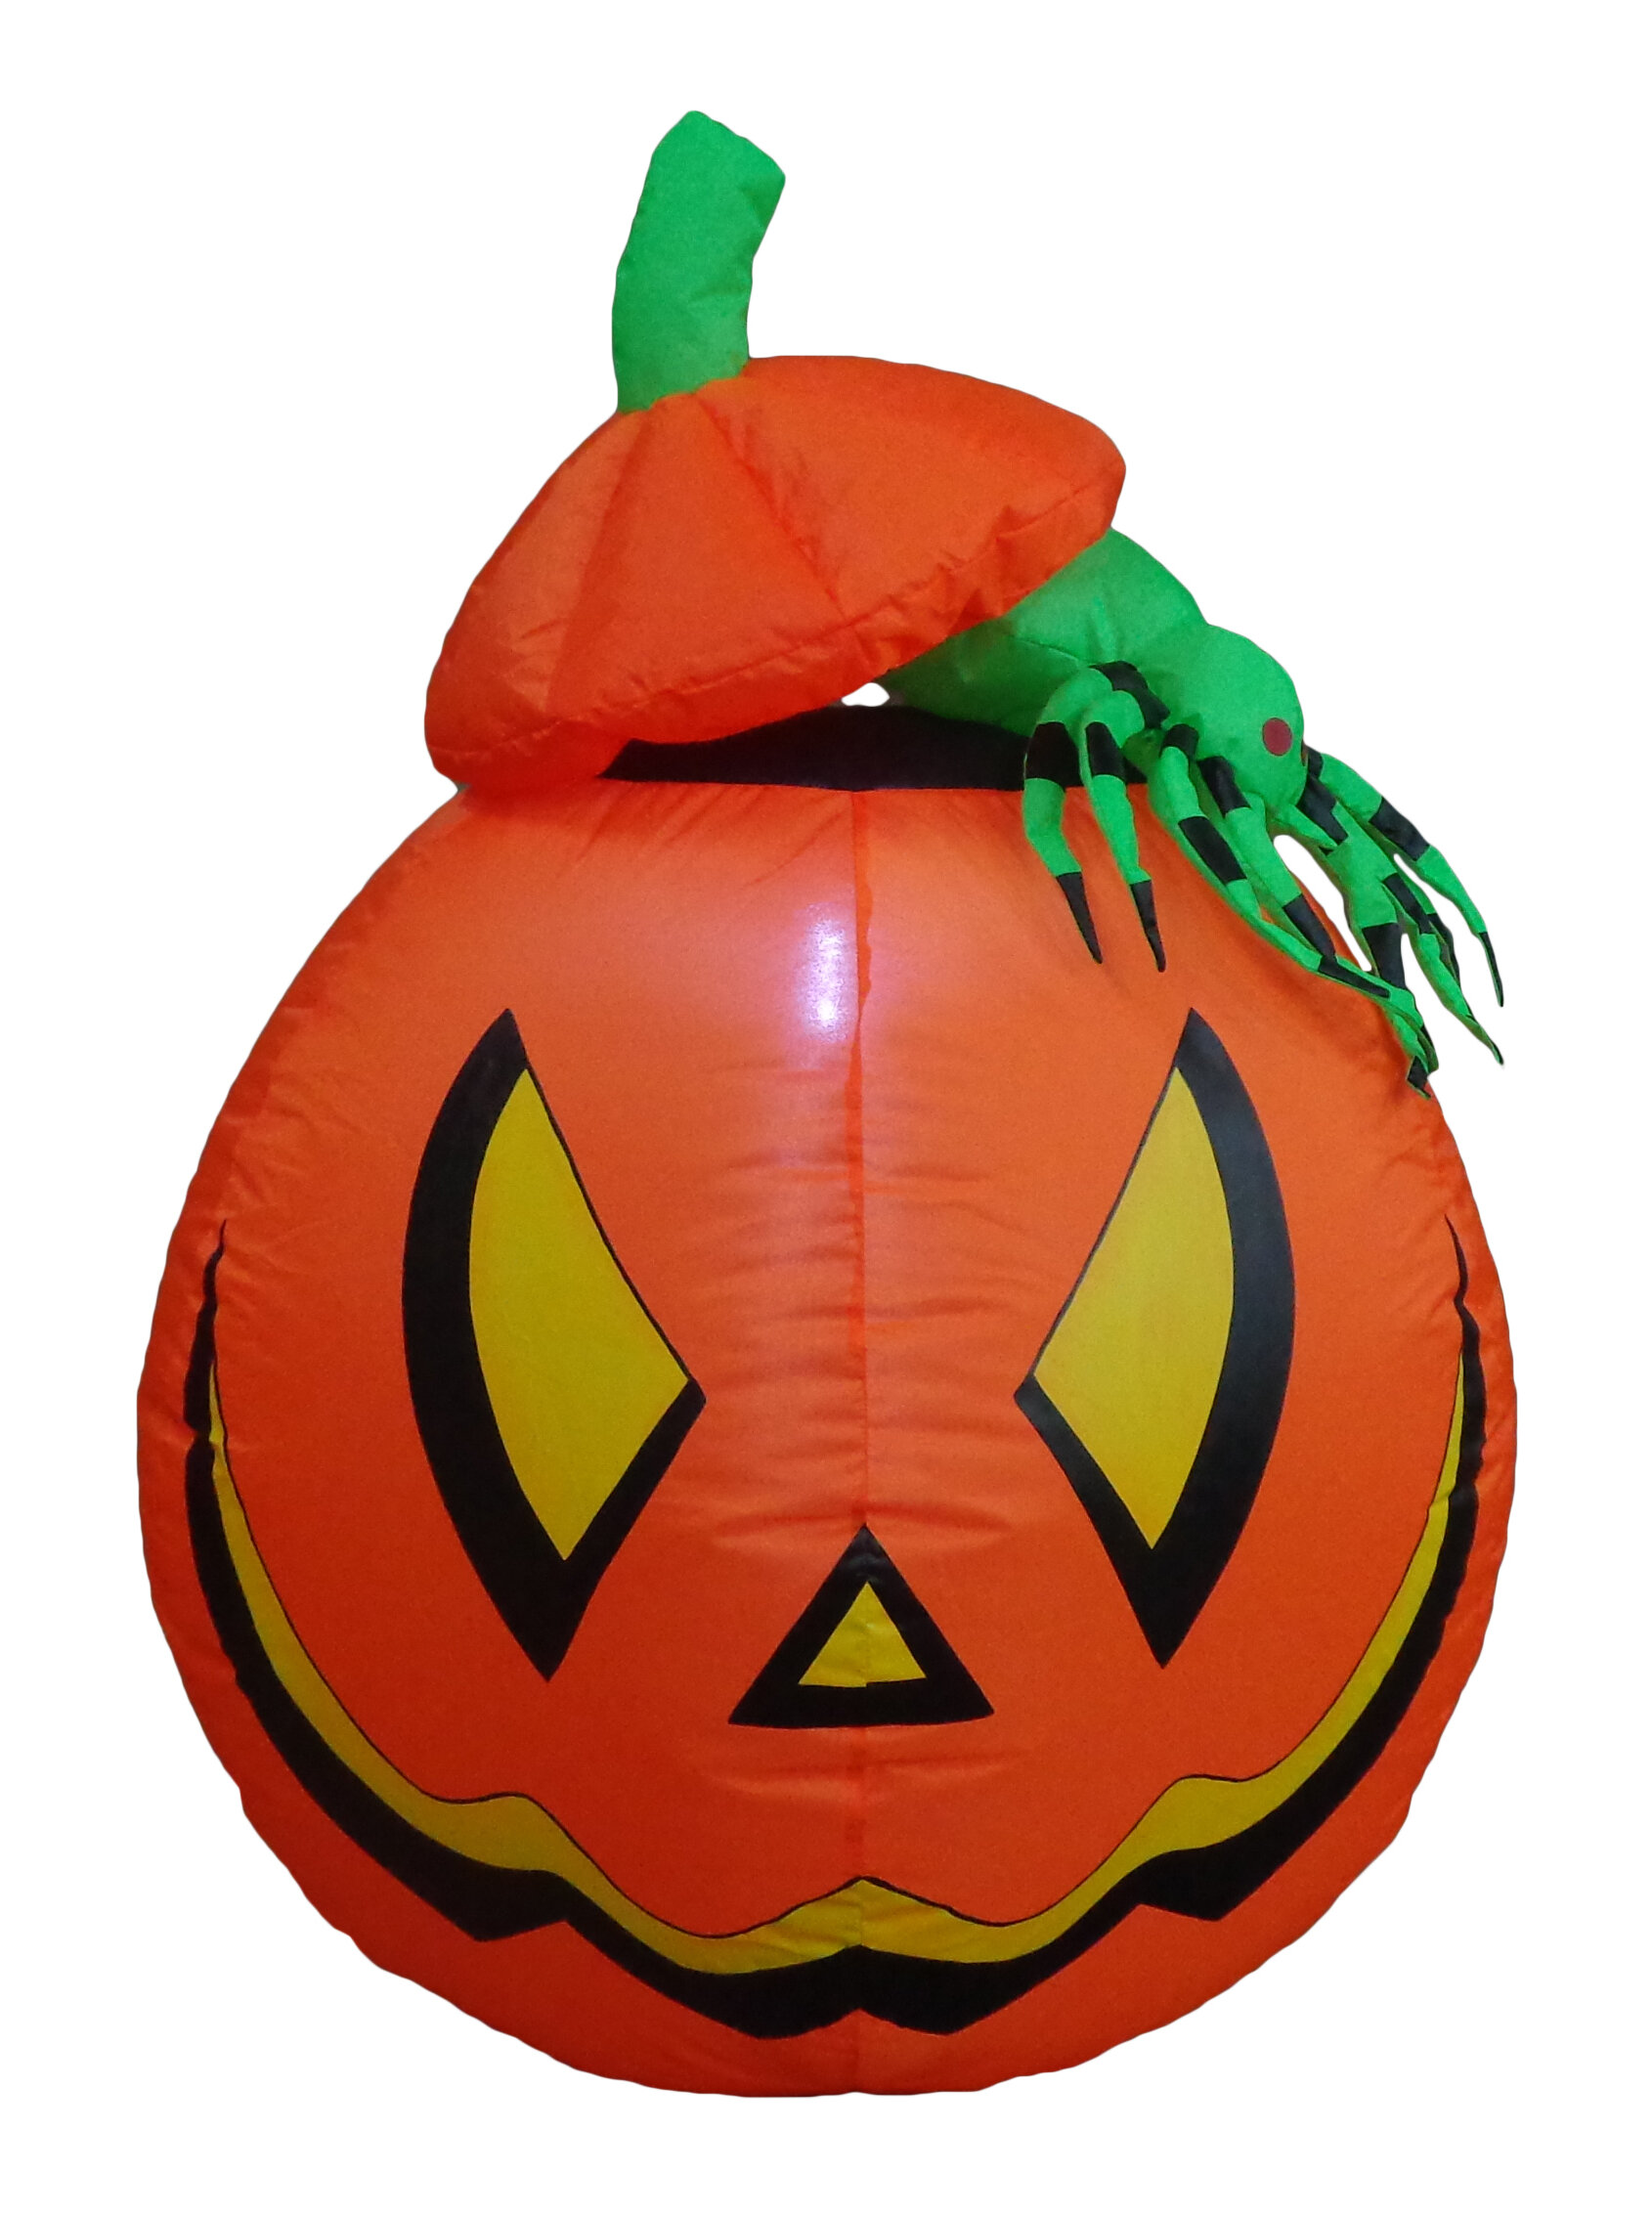 Image of: The Holiday Aisle Lighted Halloween Inflatable Pumpkin With Spider Indoor Outdoor Decoration Reviews Wayfair